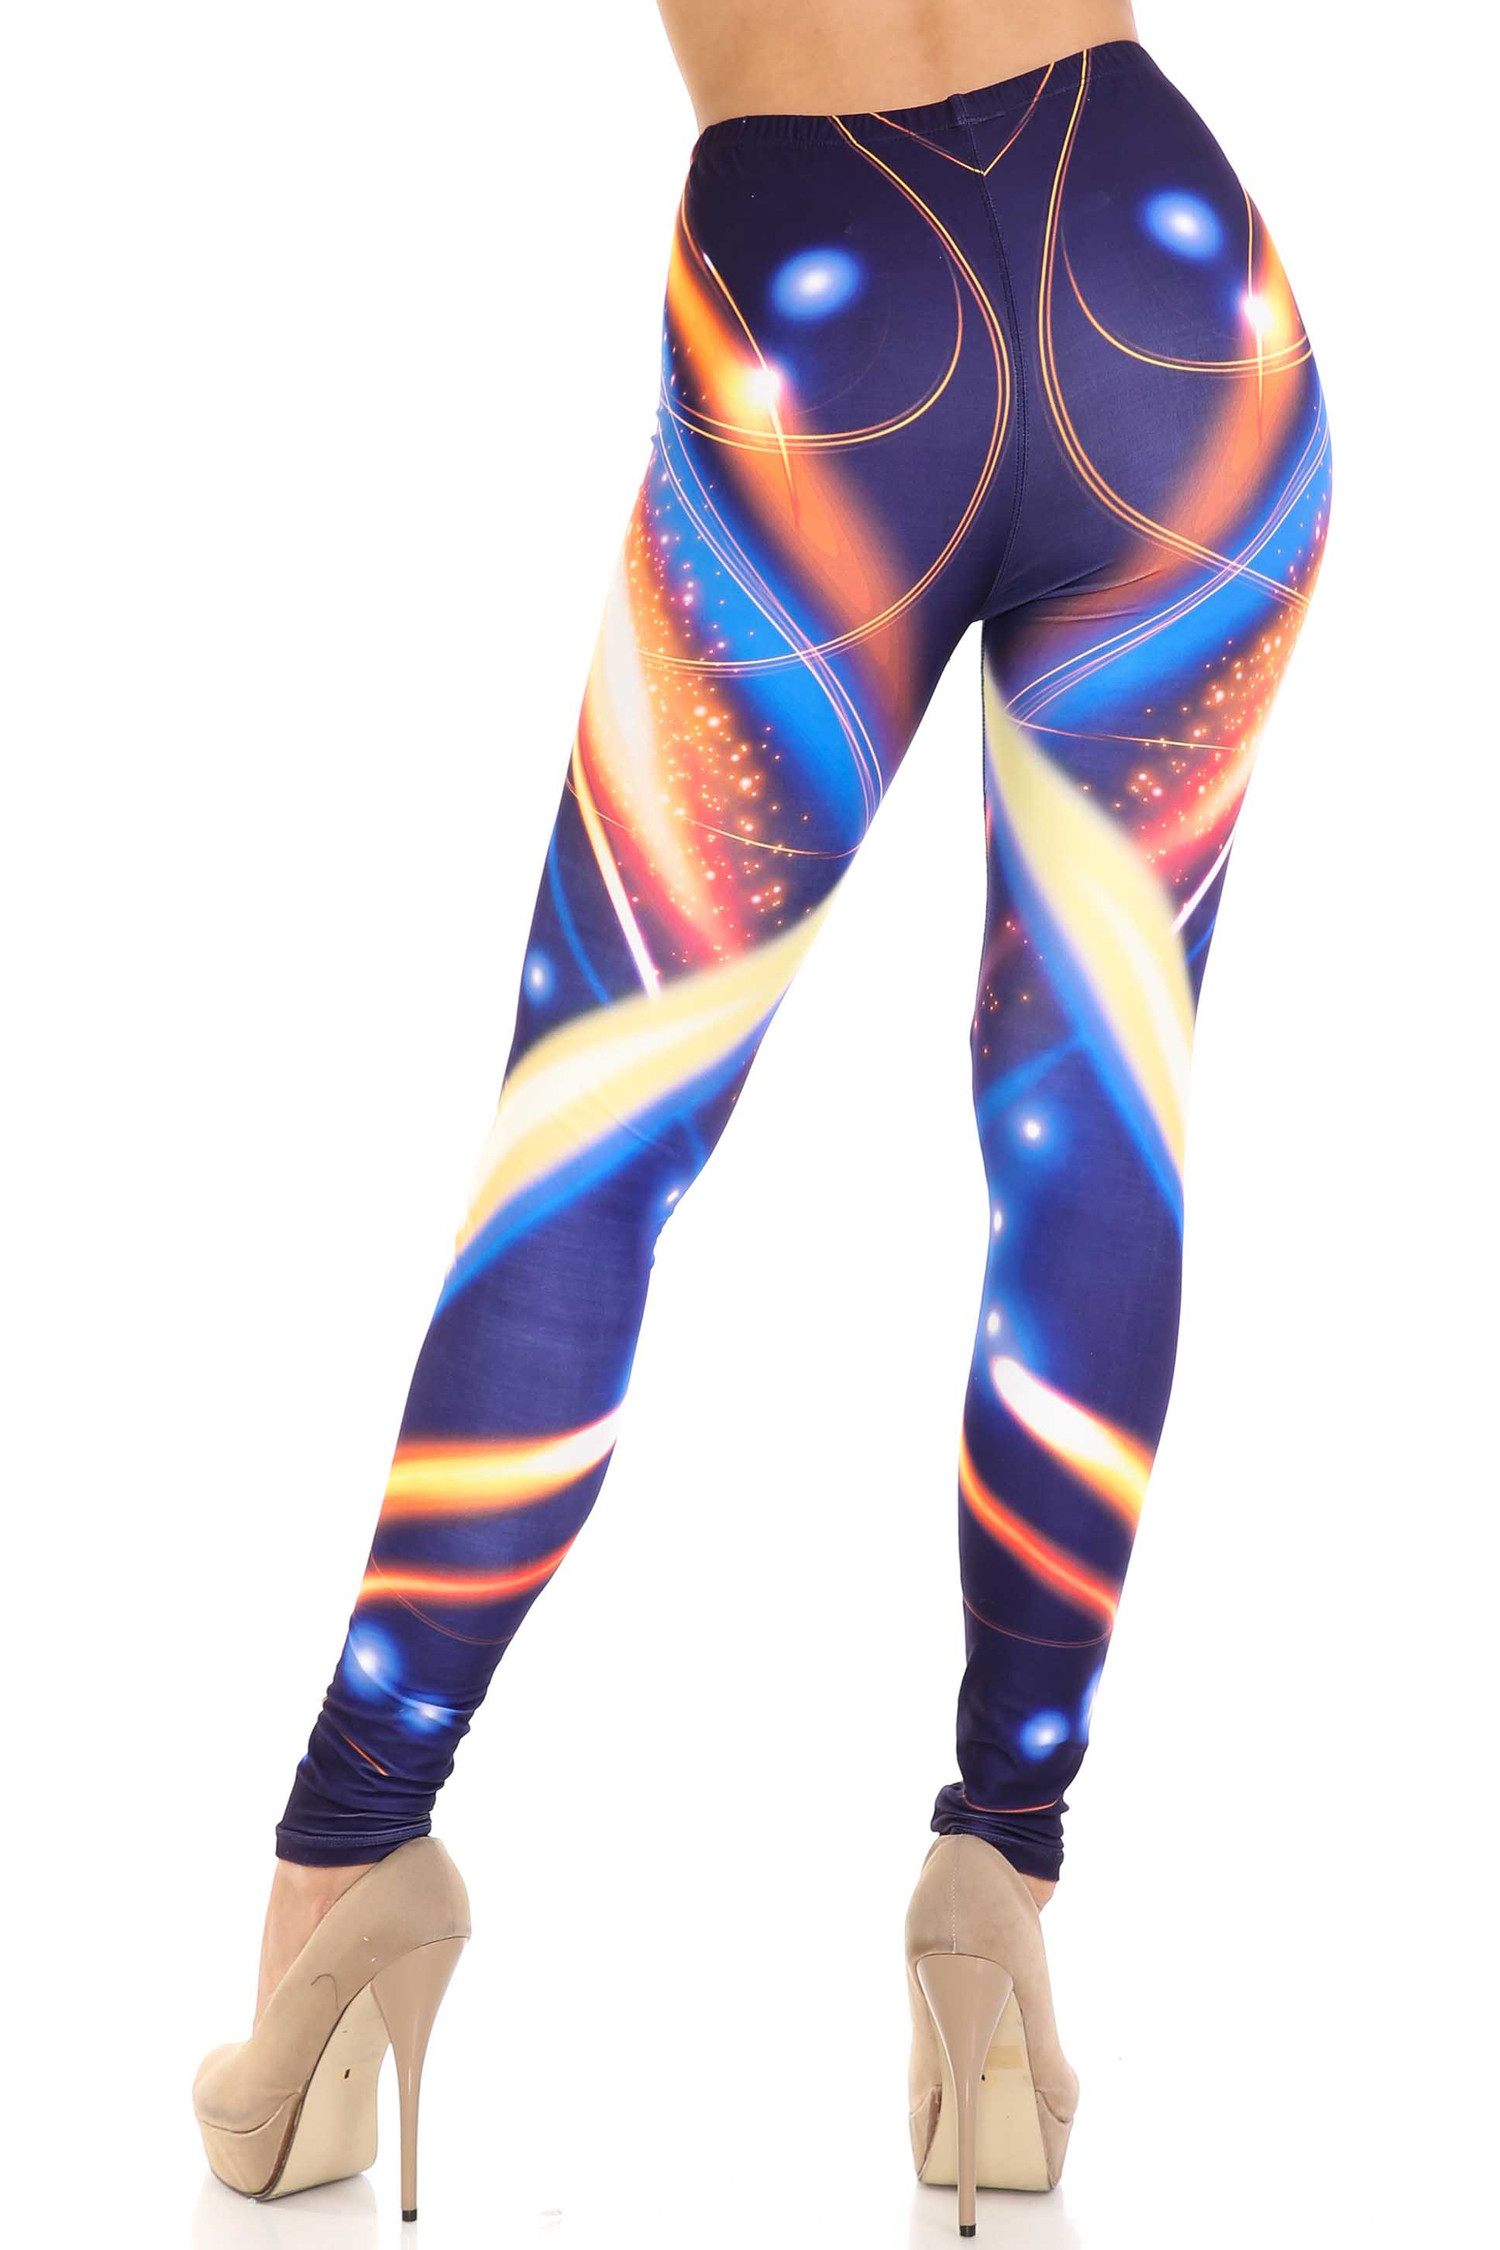 Creamy Soft Psychedelic Contour Extra Plus Size Leggings - 3X-5X - By USA Fashion™